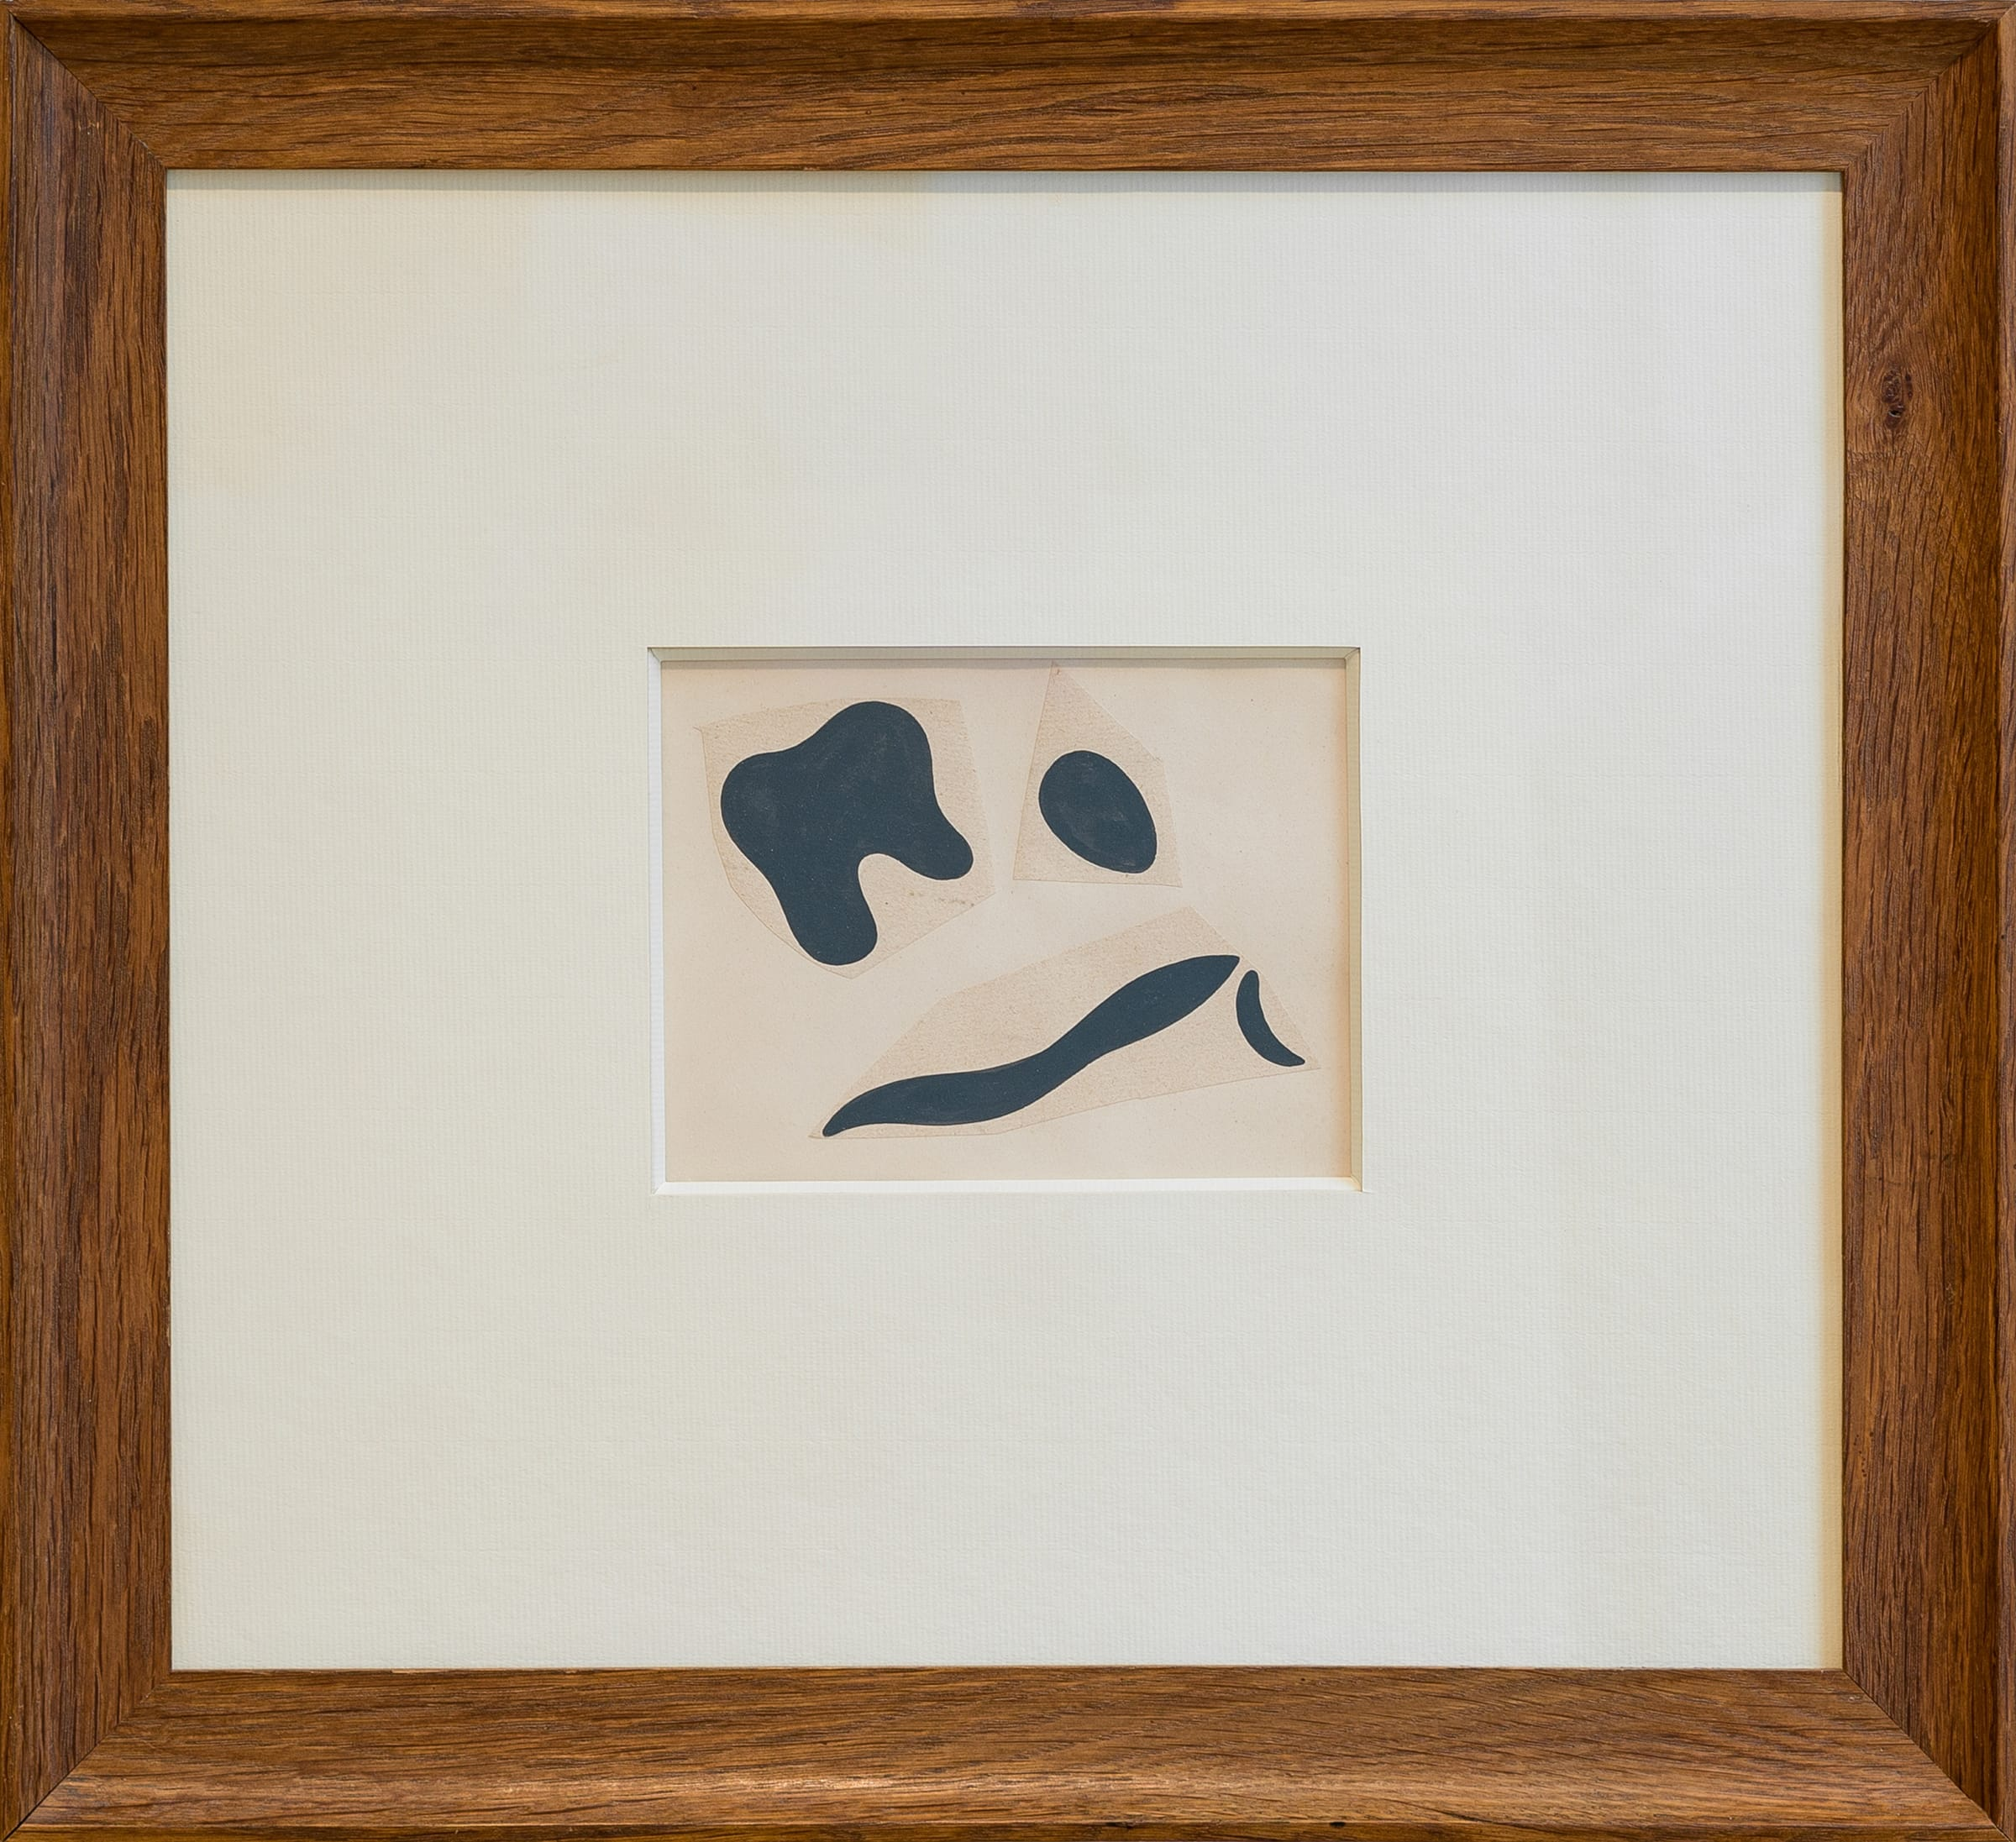 """<span class=""""link fancybox-details-link""""><a href=""""/artists/262-jean-arp/works/11191-jean-arp-untitled-c.-1934/"""">View Detail Page</a></span><div class=""""artist""""><span class=""""artist""""><strong>JEAN ARP</strong></span></div><div class=""""title""""><em>Untitled</em>, c. 1934</div><div class=""""signed_and_dated"""">Signed and stamped on reverse Succ Jean Arp (Succession Jean Arp)</div><div class=""""medium"""">Collage on paper</div><div class=""""dimensions"""">4 3/4 x 6 1/2 inches (12 x 16.5 cm)<br /> Frame: 18 3/4 x 16 3/4 inches (47.5 x 42.5 cm)</div>"""